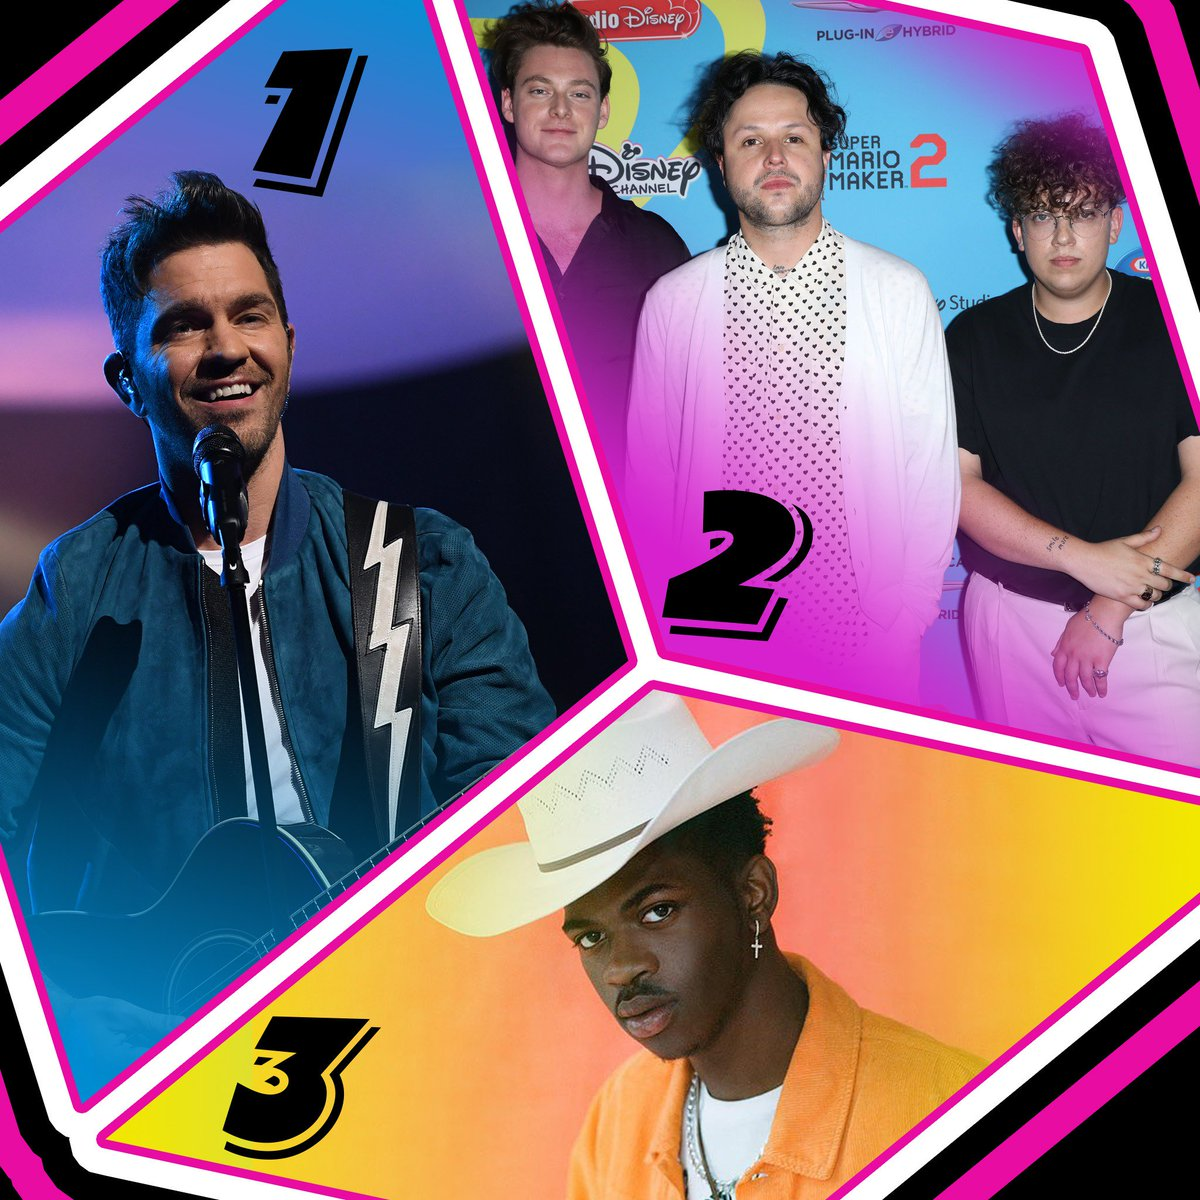 Heres Tuesdays #RDTop3! 1. @AndyGrammer #DontGiveUpOnMe 2. @lovelytheband #TheseAreMyFriends 3. @LilNasX #OldTownRoad